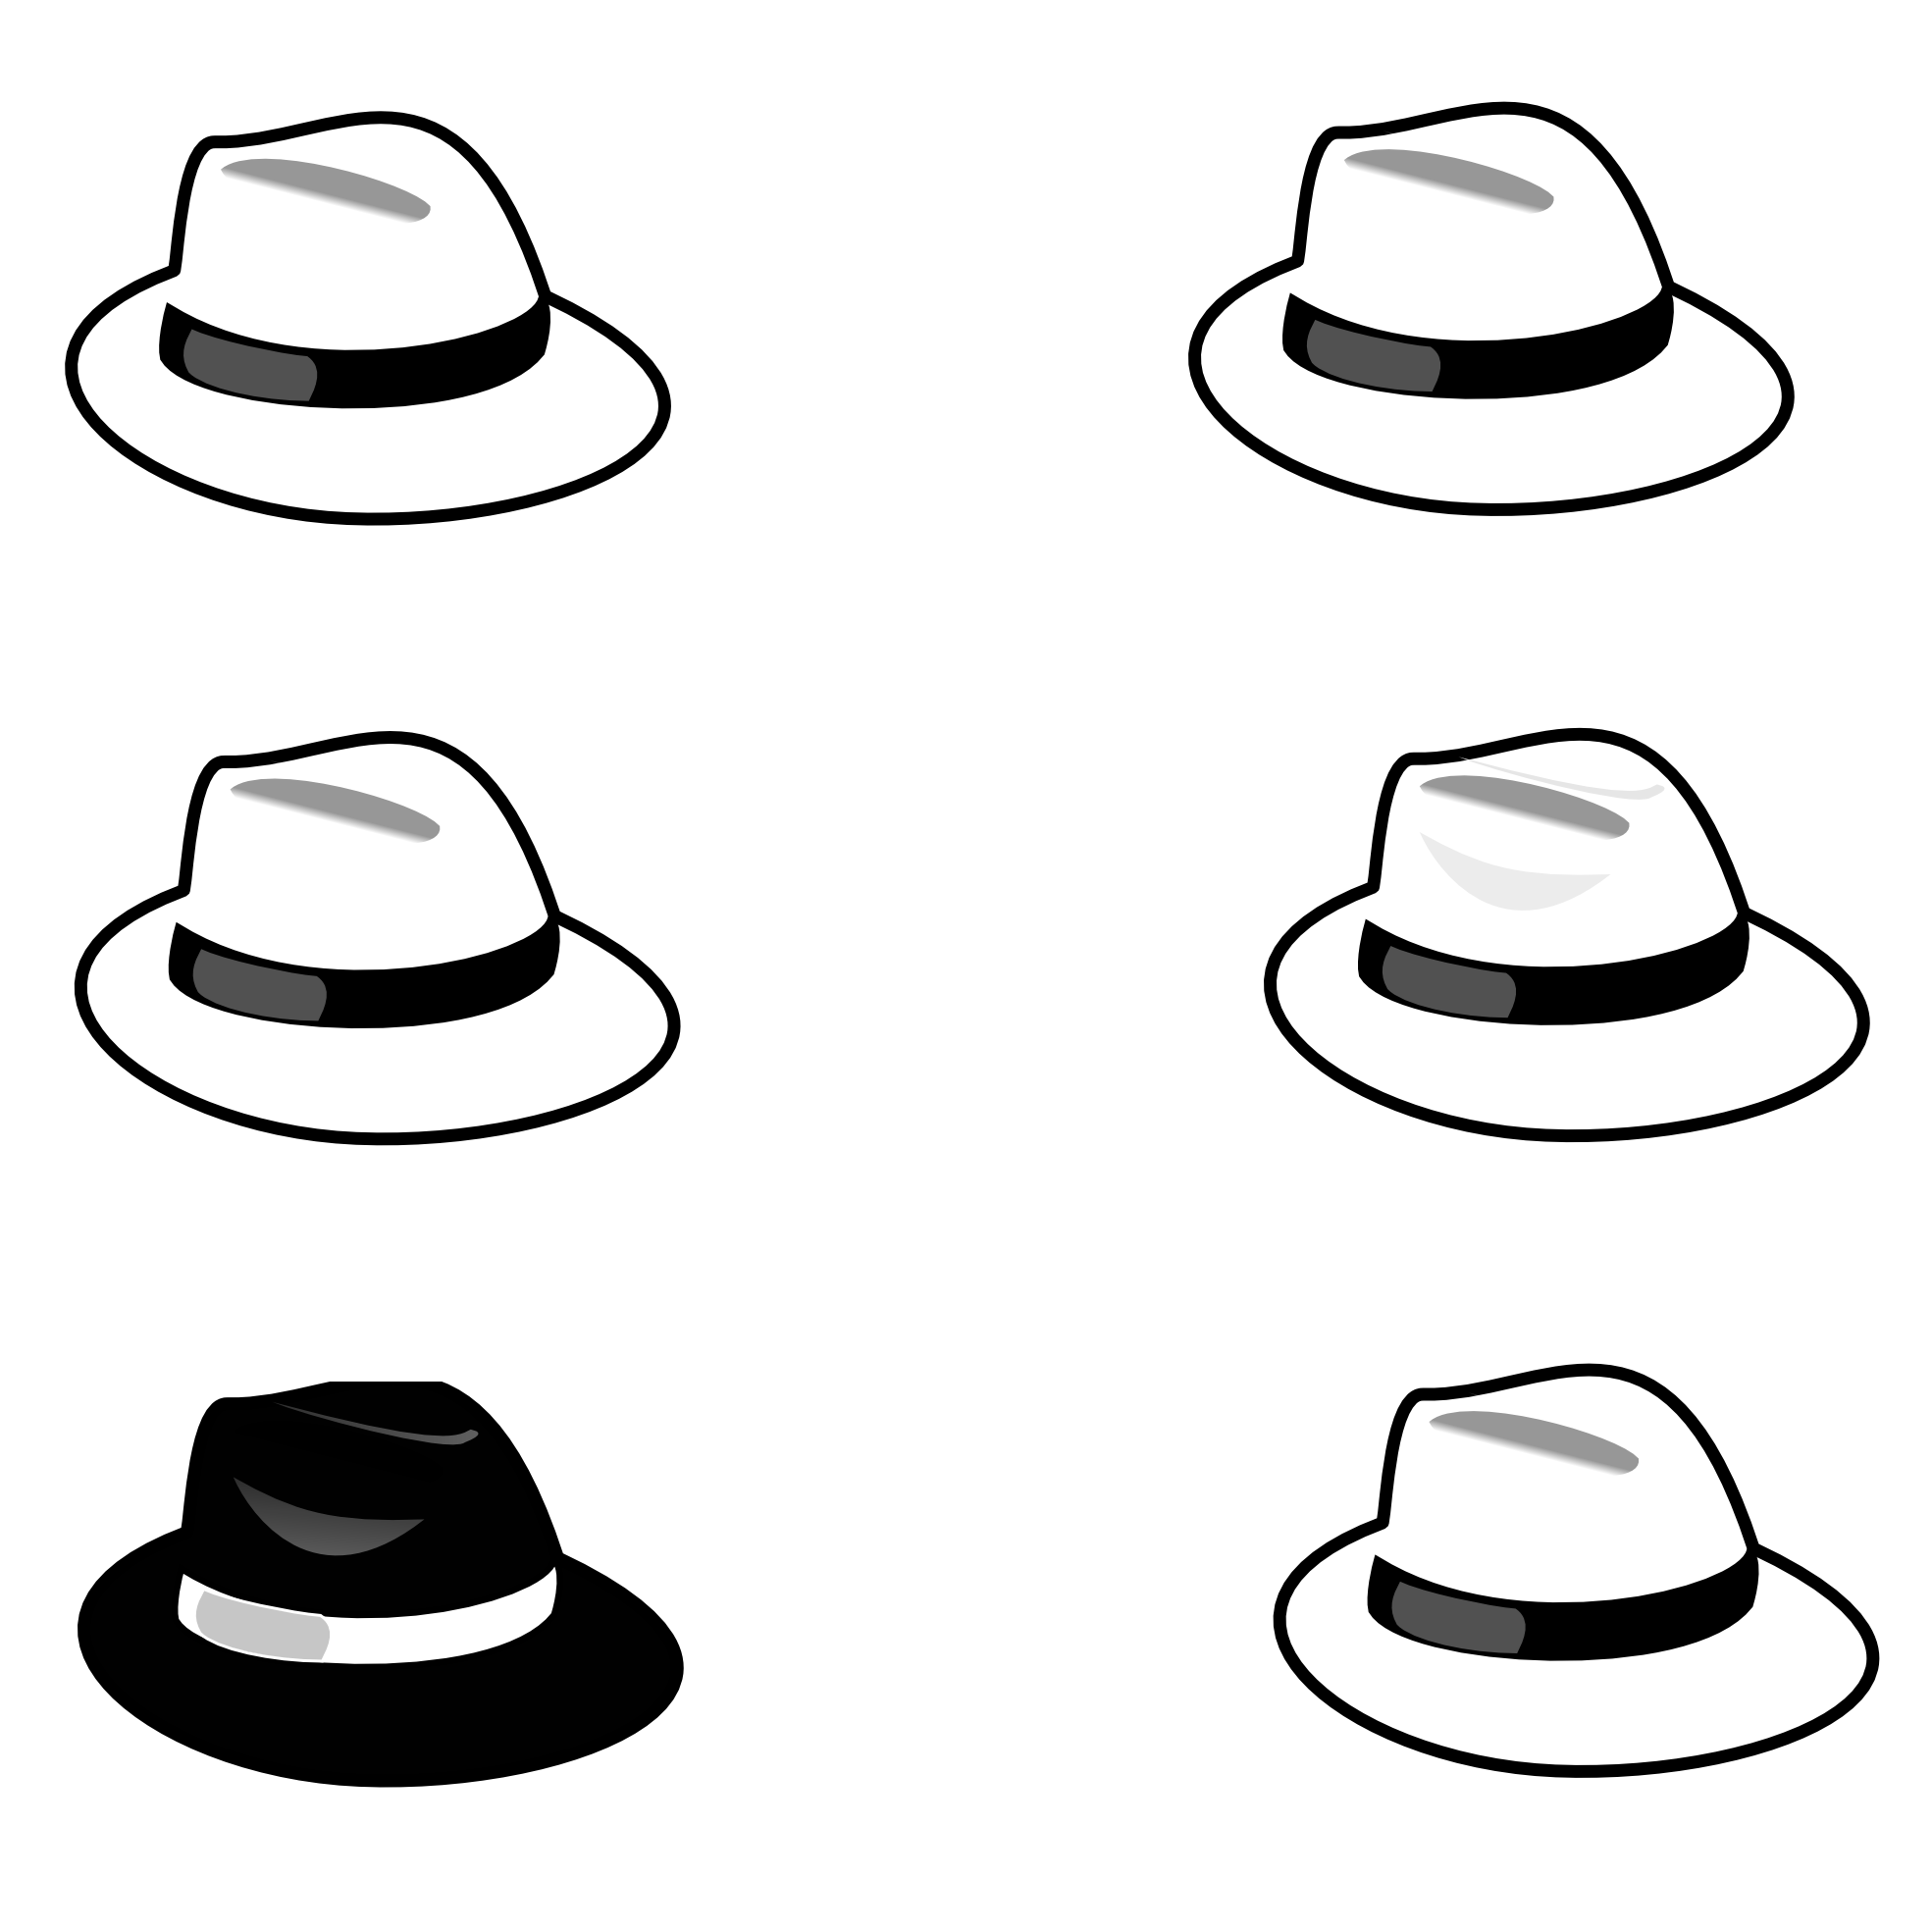 Pirate hat clipart black and white - photo#19